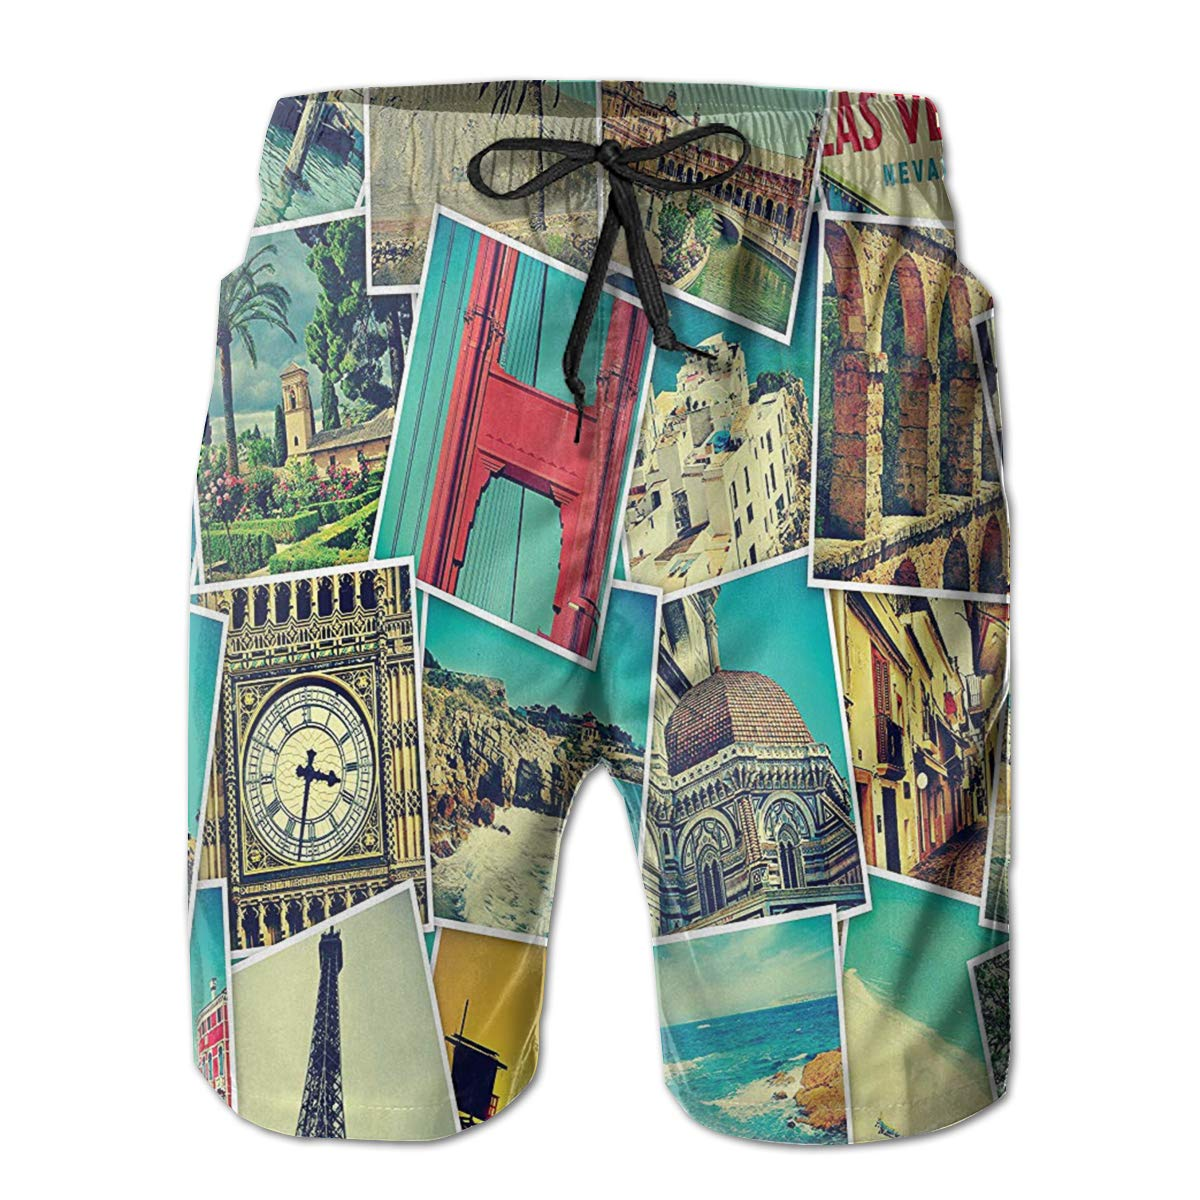 Bilybily Mosaic with Pictures of Different Places Mens Swim Trunks Quick Dry Board Shorts with Pockets Summer Beach Shorts